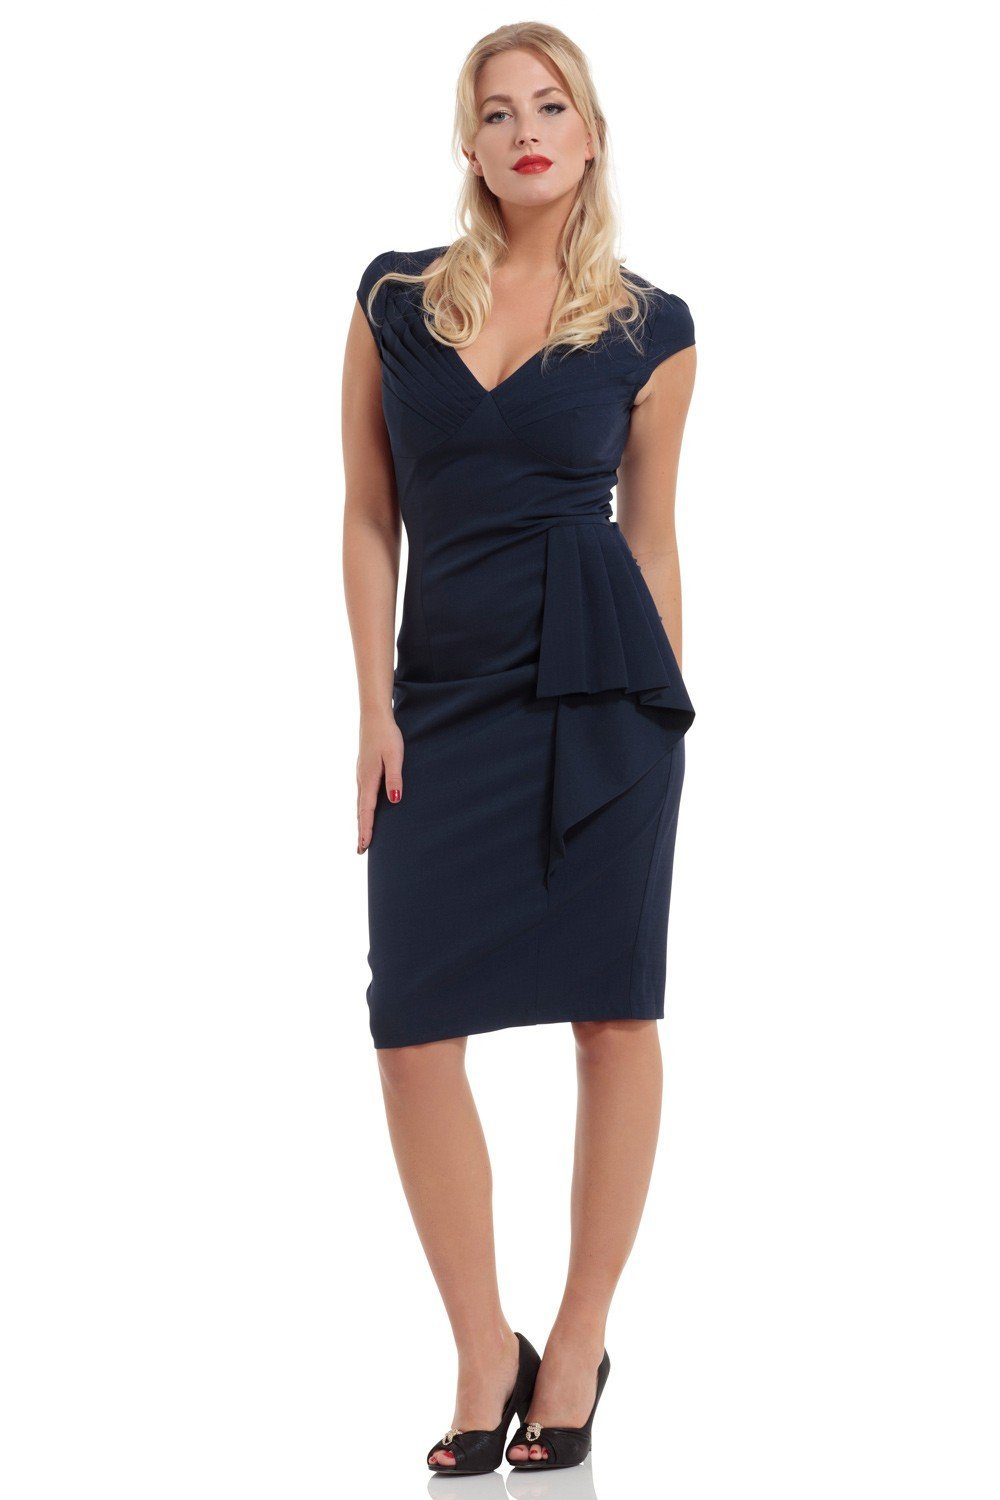 Voodoo Vixen Khloe Pencil Dress (Blue) - Bohemian Finds